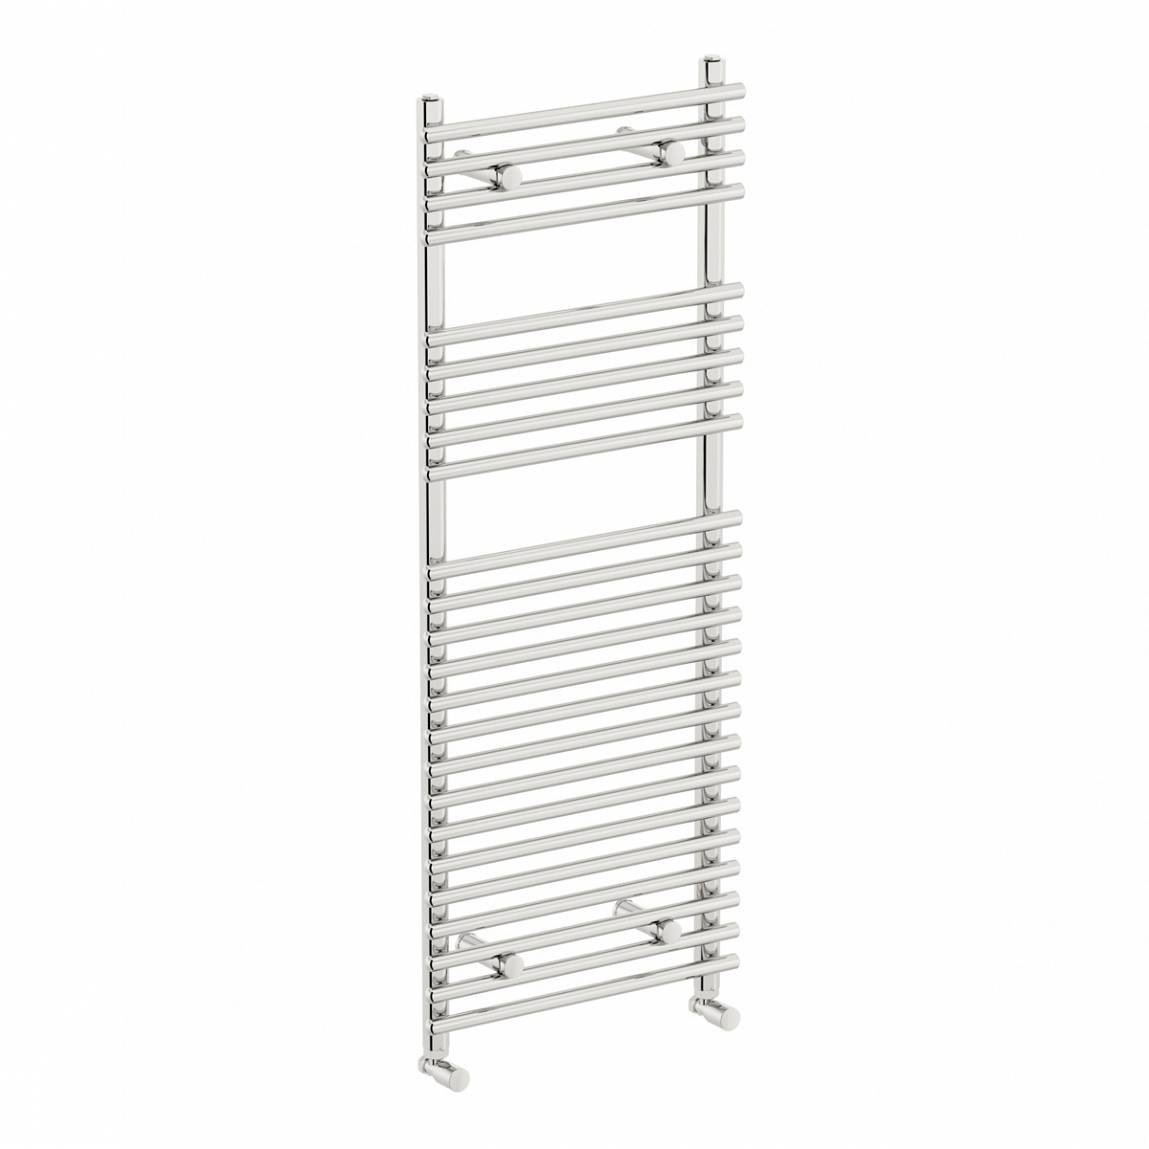 Image of Tubular Heated Towel Rail 1150 x 450